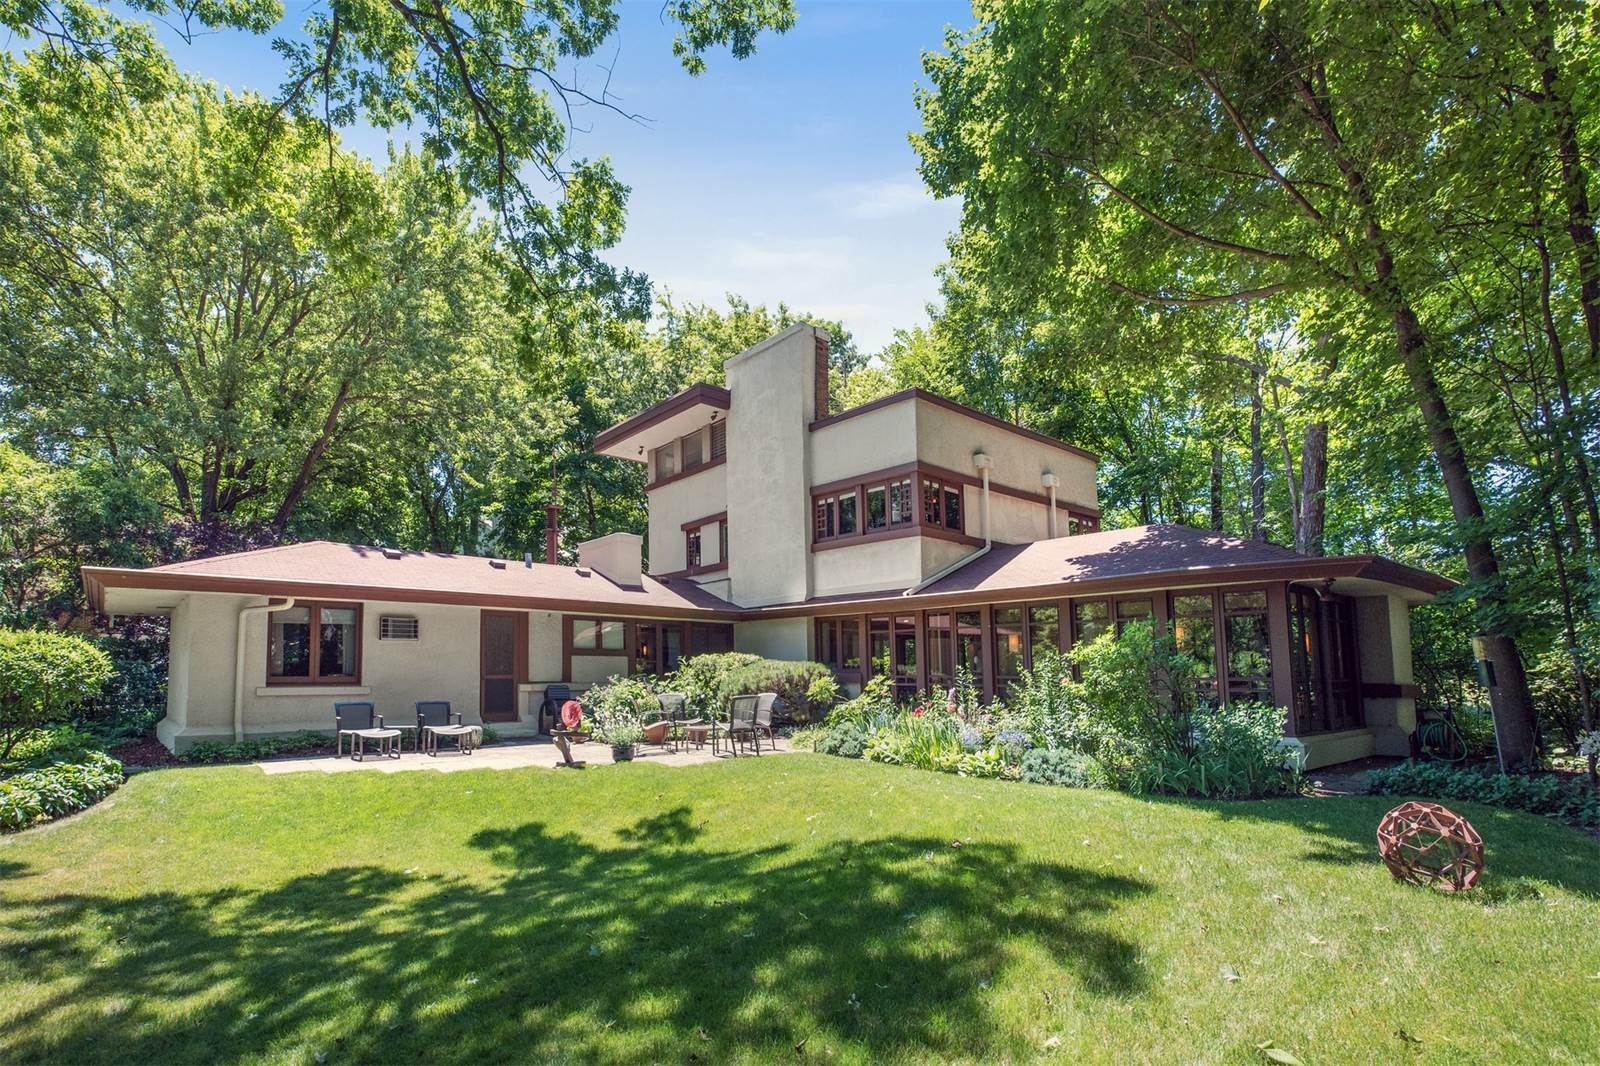 Frank lloyd wright homes for sale around chicago curbed for Franks homes